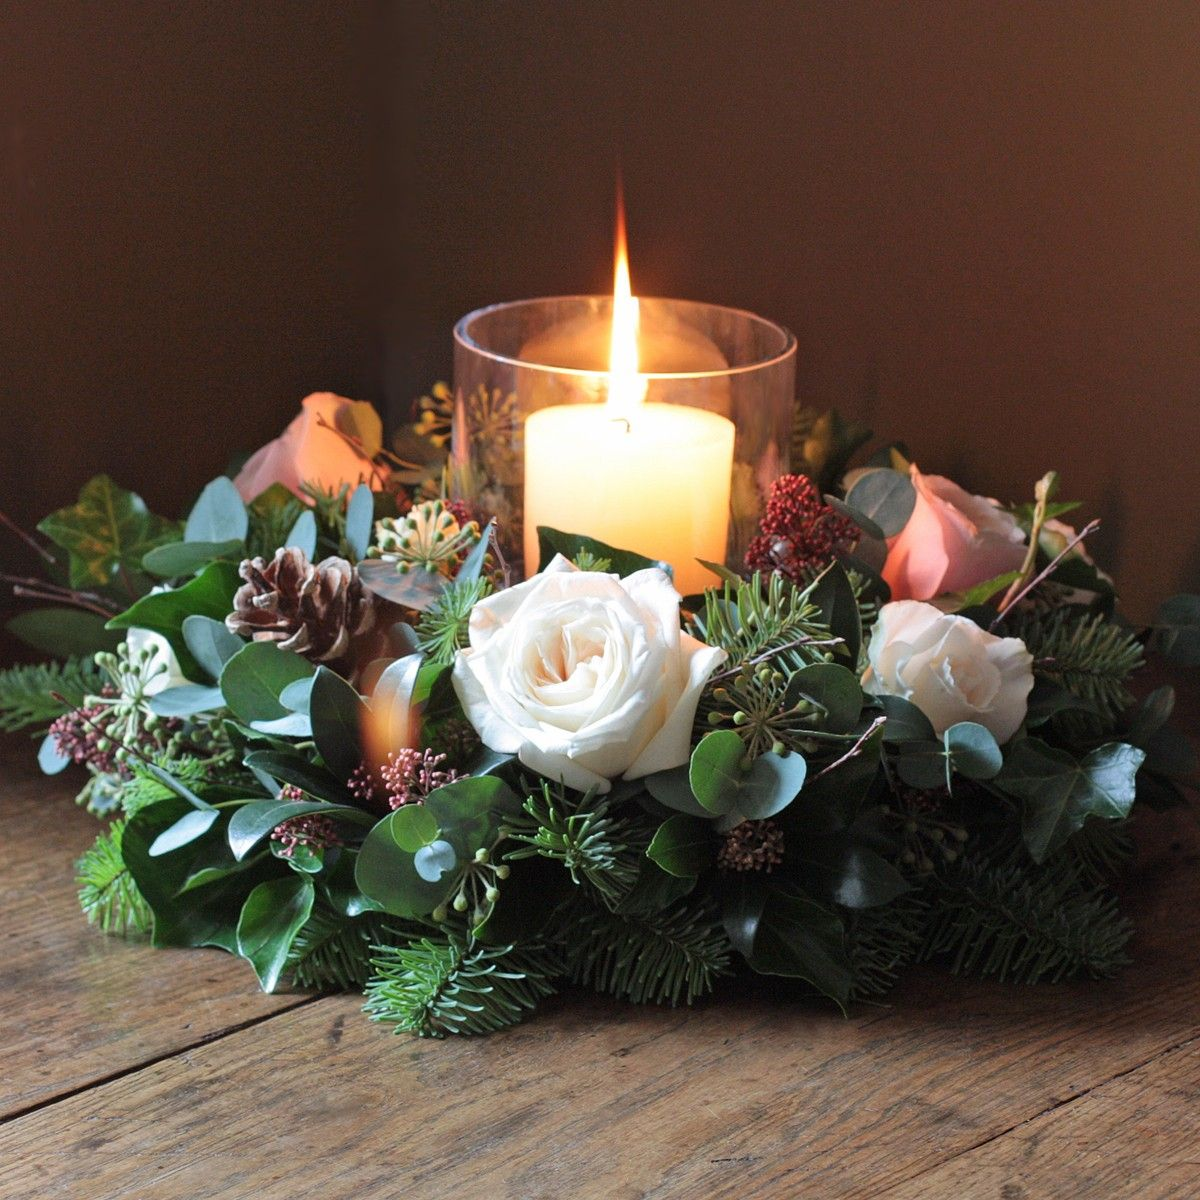 The Real Flower Company Scented Woodland Christmas Table